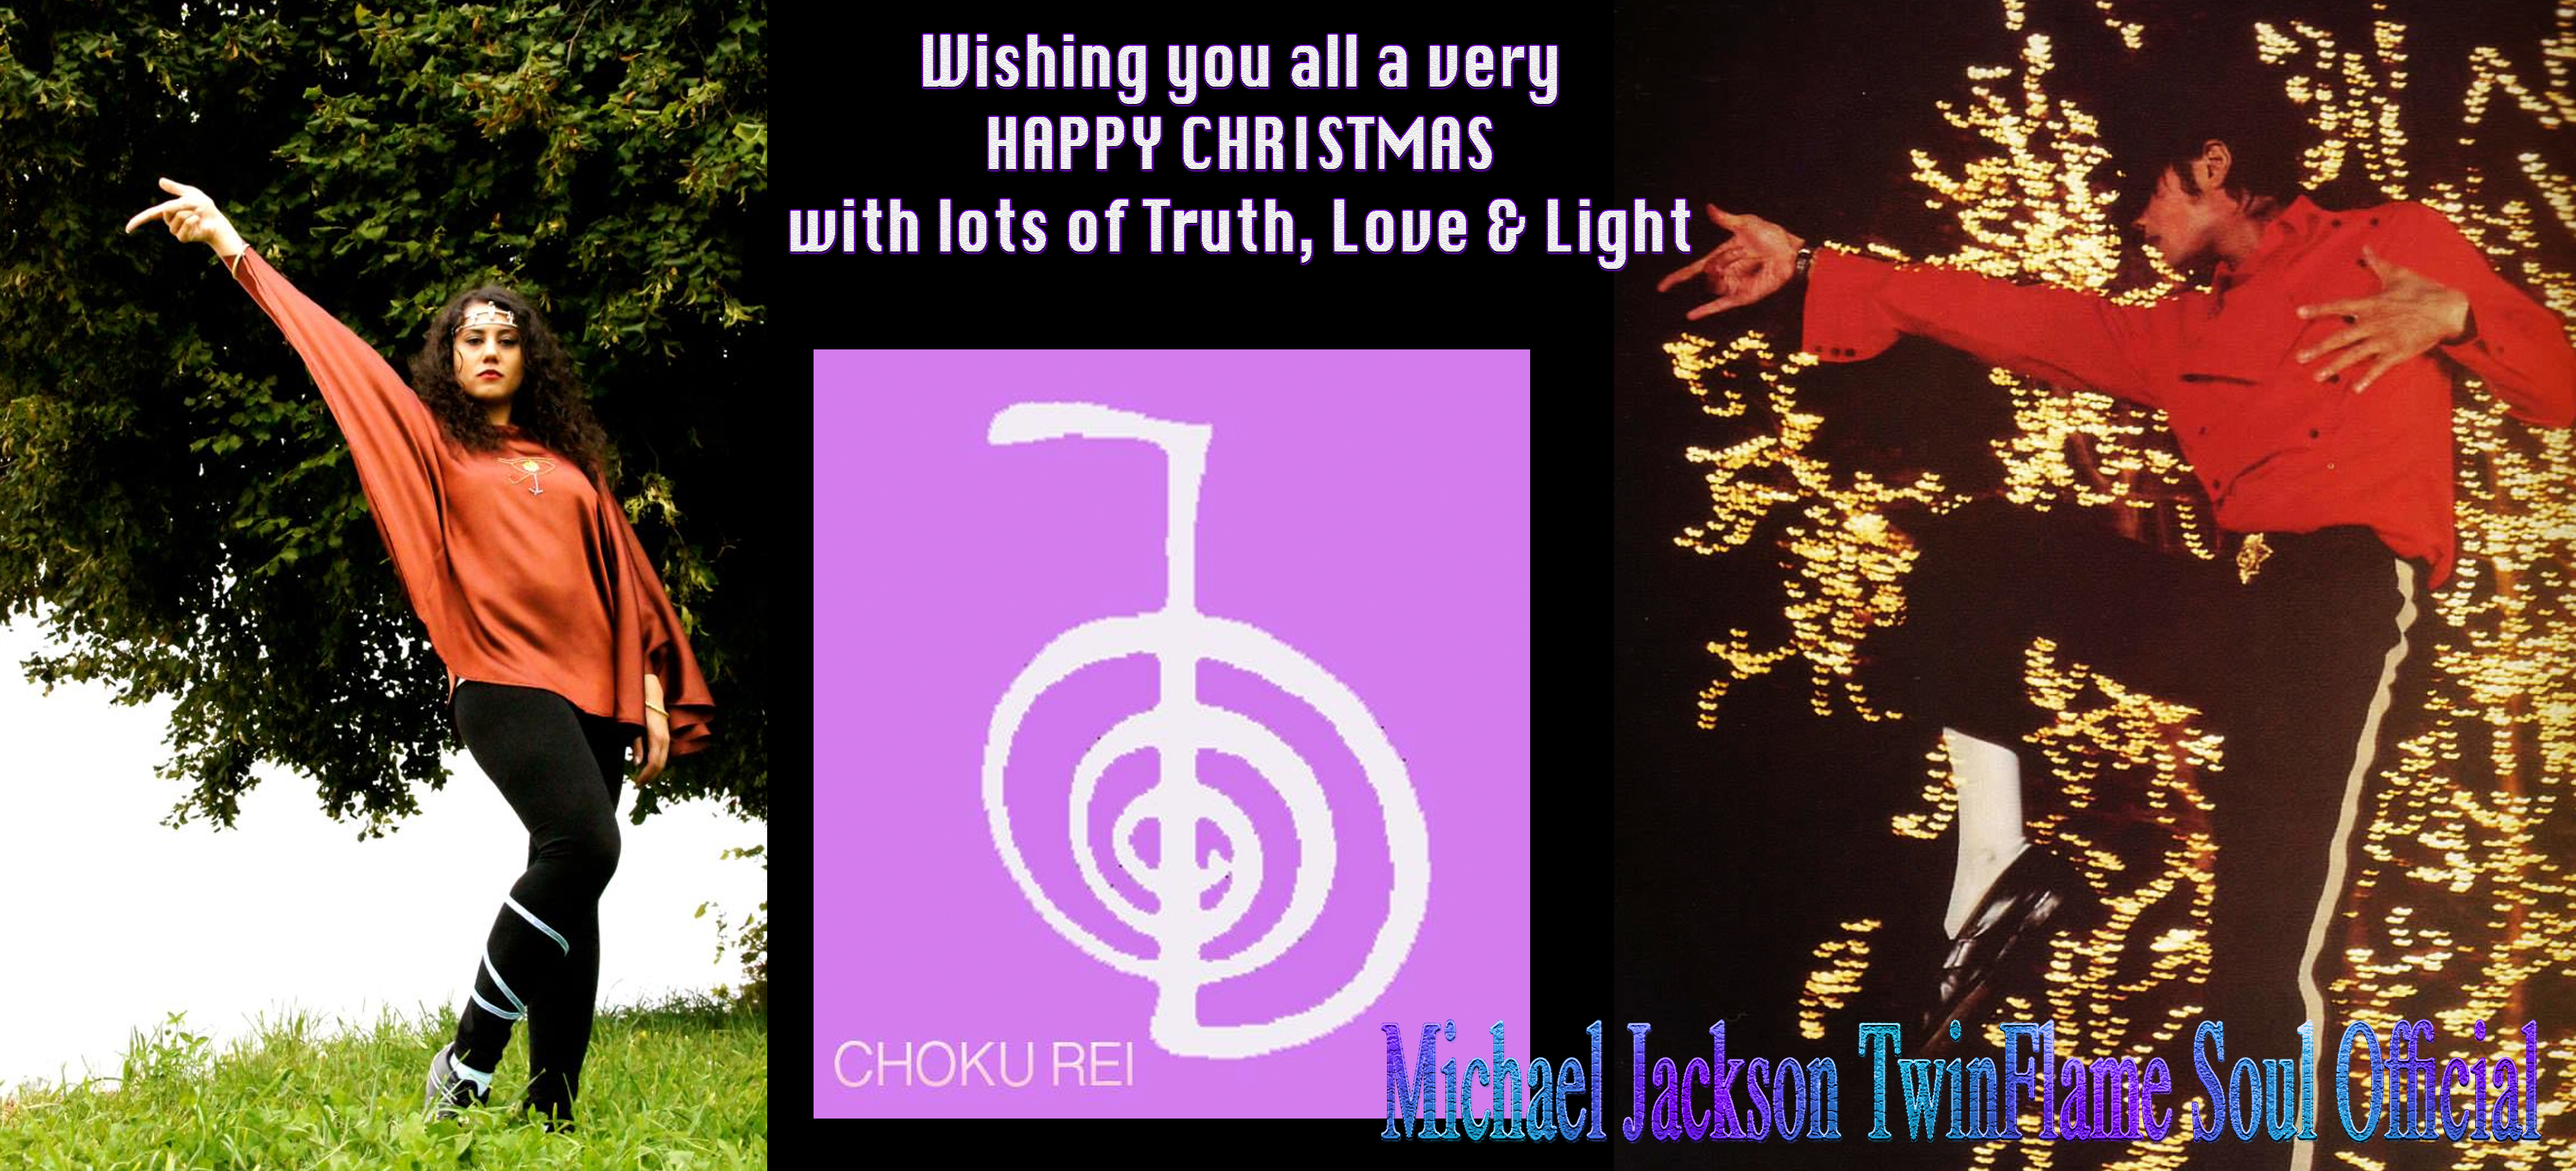 Michael Jackson TwinFlame Soul Official Christmas Wishes and Message ...